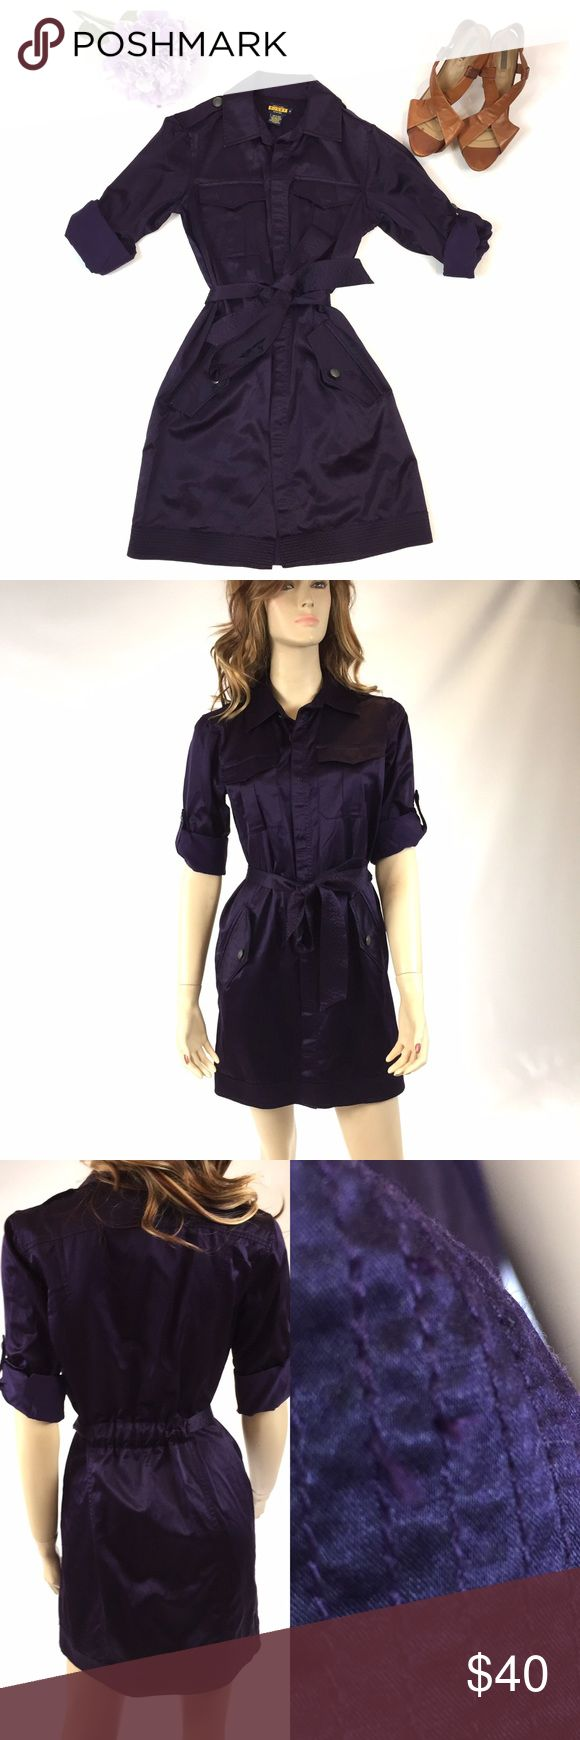 RALPH LAUREN RUBY PURPLE DRESS SIZE 2 GOOD CONDITION!  RUBY RALPH LUAREN  PURPLE DRESS SIZE 2  55% SILK, 45 % COTTON DRY CLEAN ONLY!  VERY STYLISH DRESS WITH THE SLEEVES ROLLED UP STYLE AND TIE AT THE WAIST!  CAN BE WORN FOR BUSINESS OR FOR A NIGHT OUT! HAS LOOSE THREADS ON BELT AND SHOULDER!  SMOKE FREE HOME Ralph Lauren Dresses